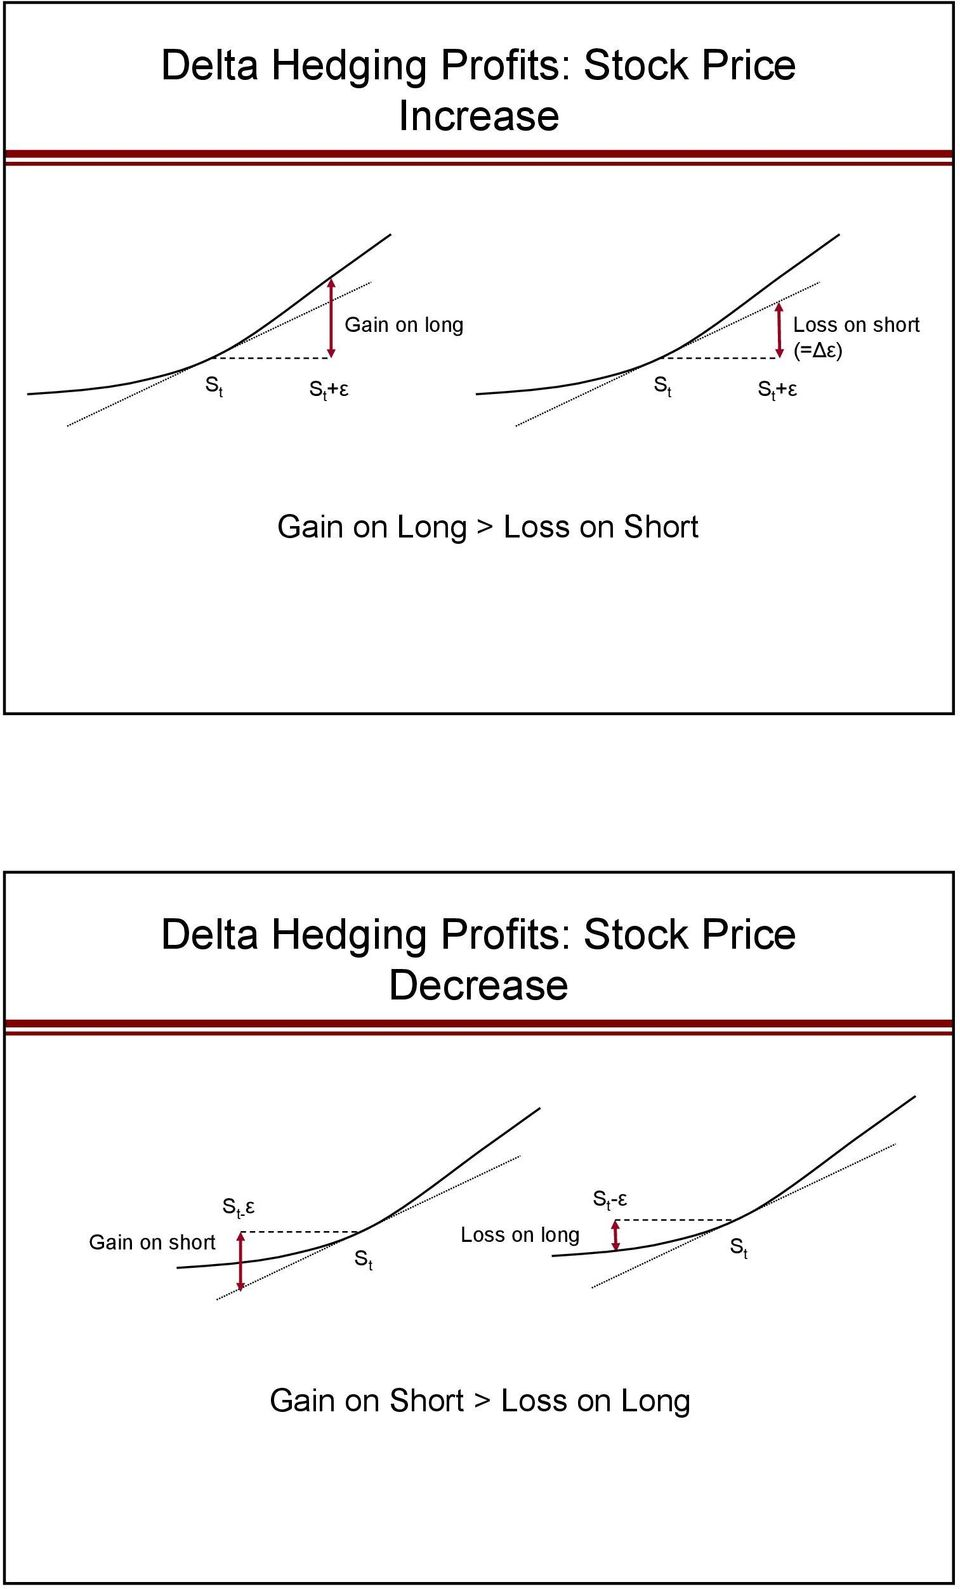 Short Delta Hedging Profits: Stock Price Decrease S t- ε Gain